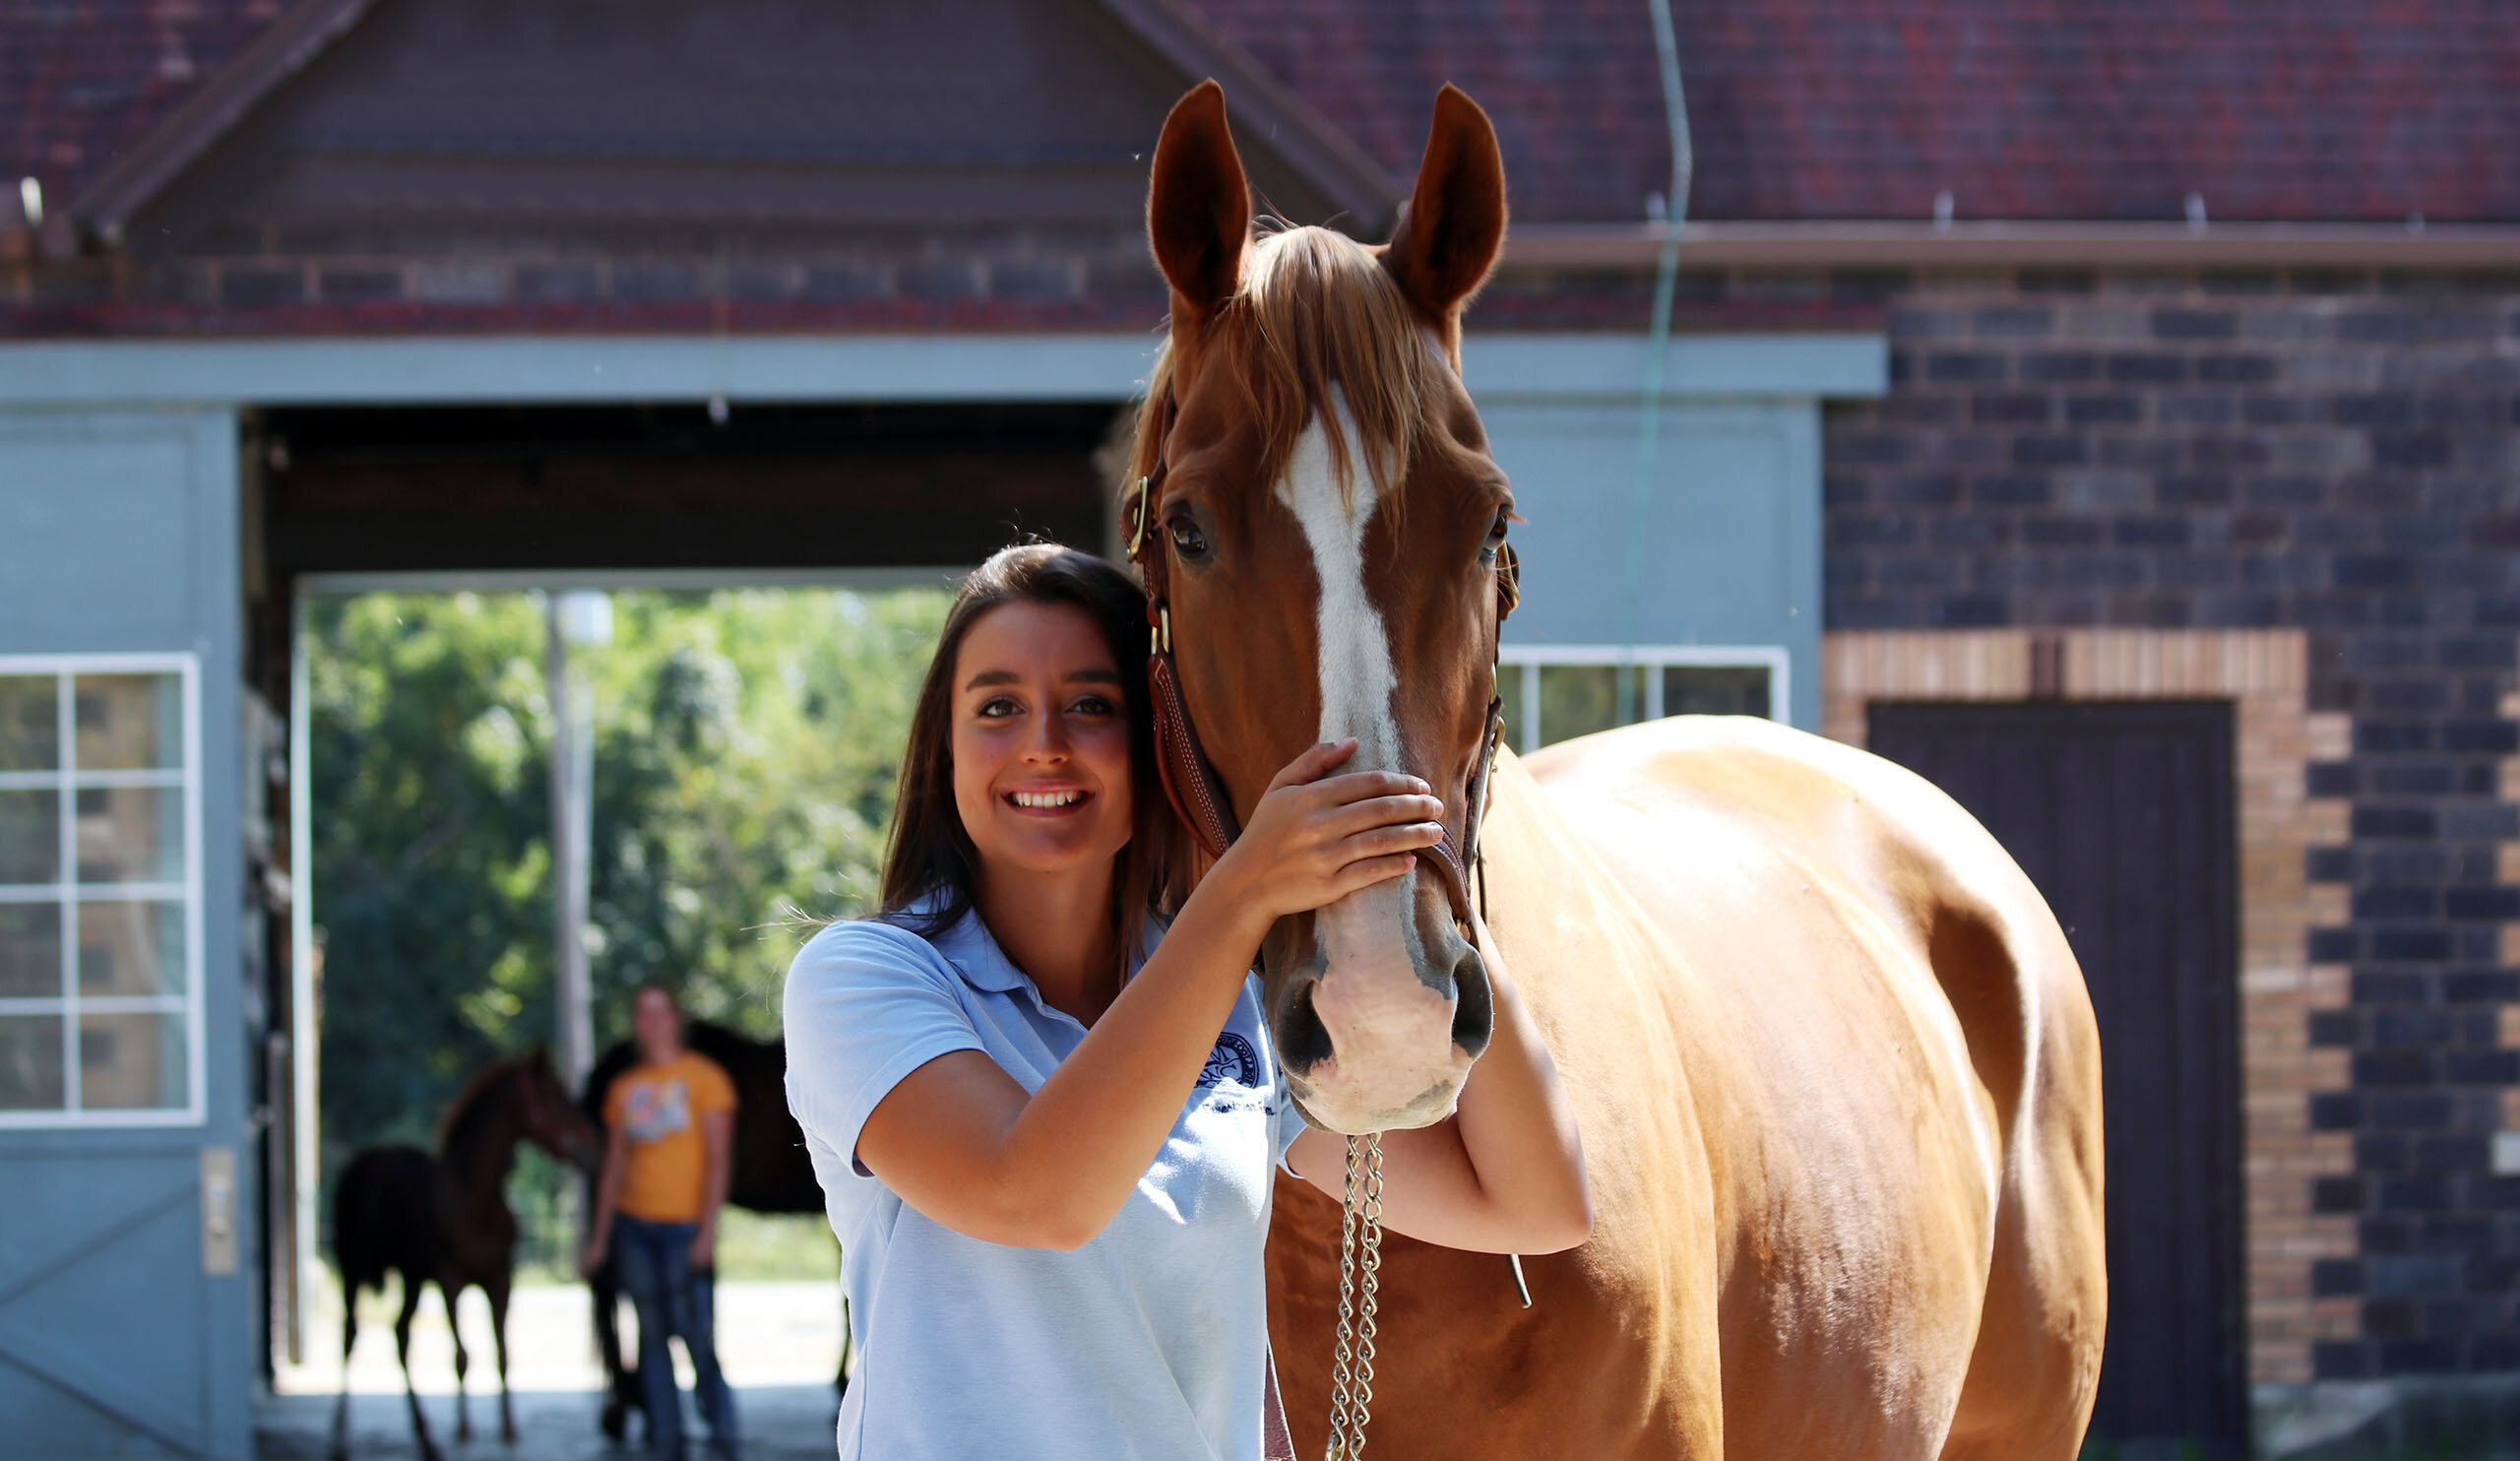 Savannah smiling with a horse